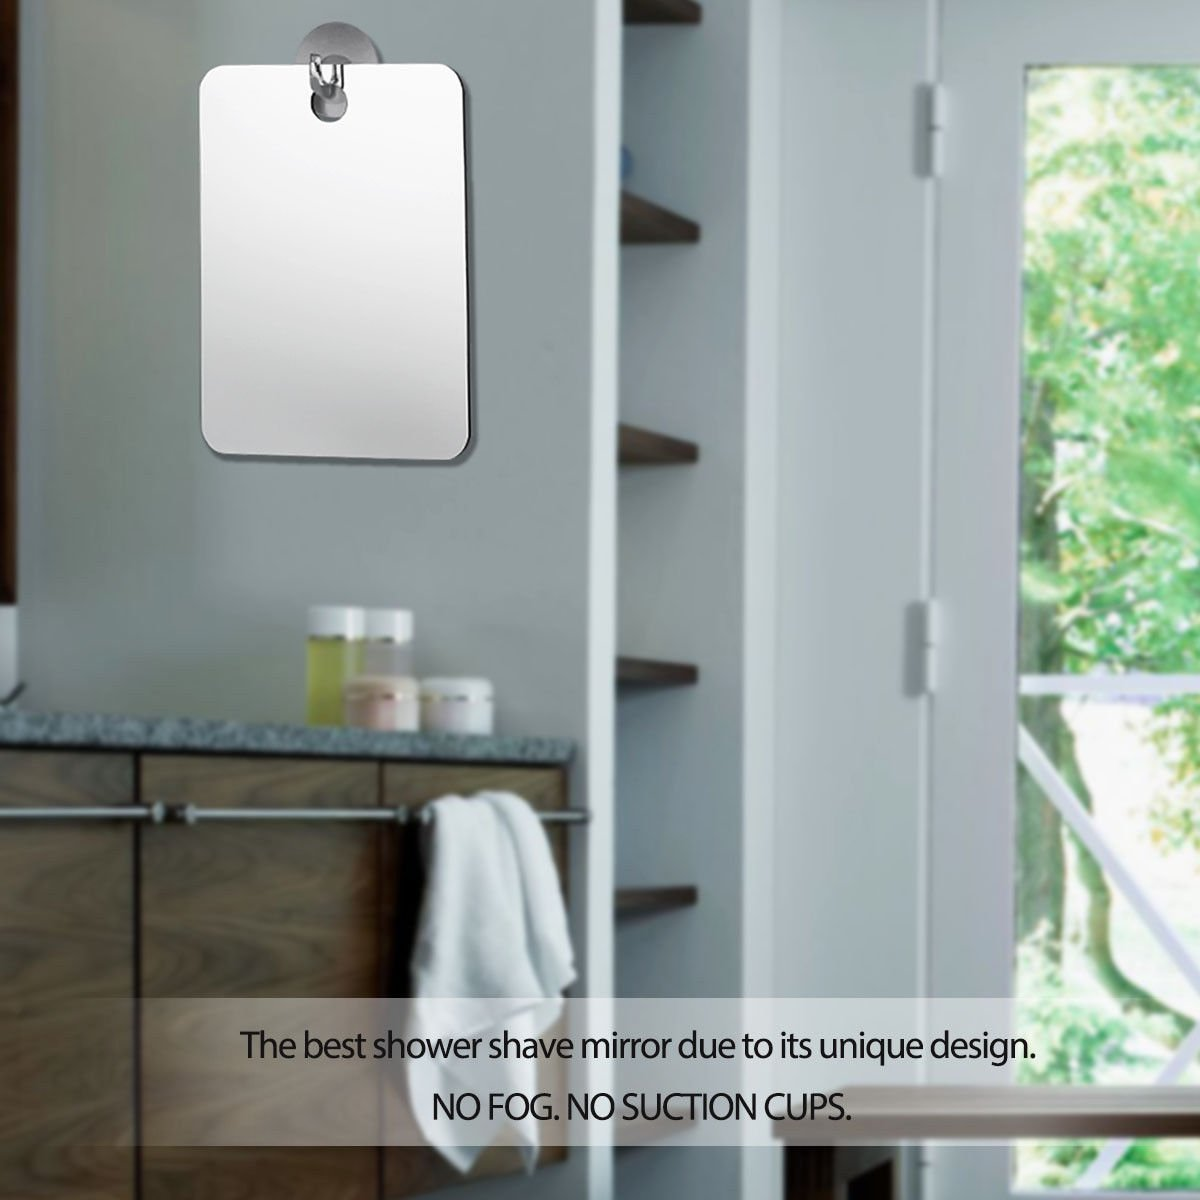 ade_best Bathroom Makeup Reflection Glass Shower Shaving Mirror with Anti-fog No Suction Cups